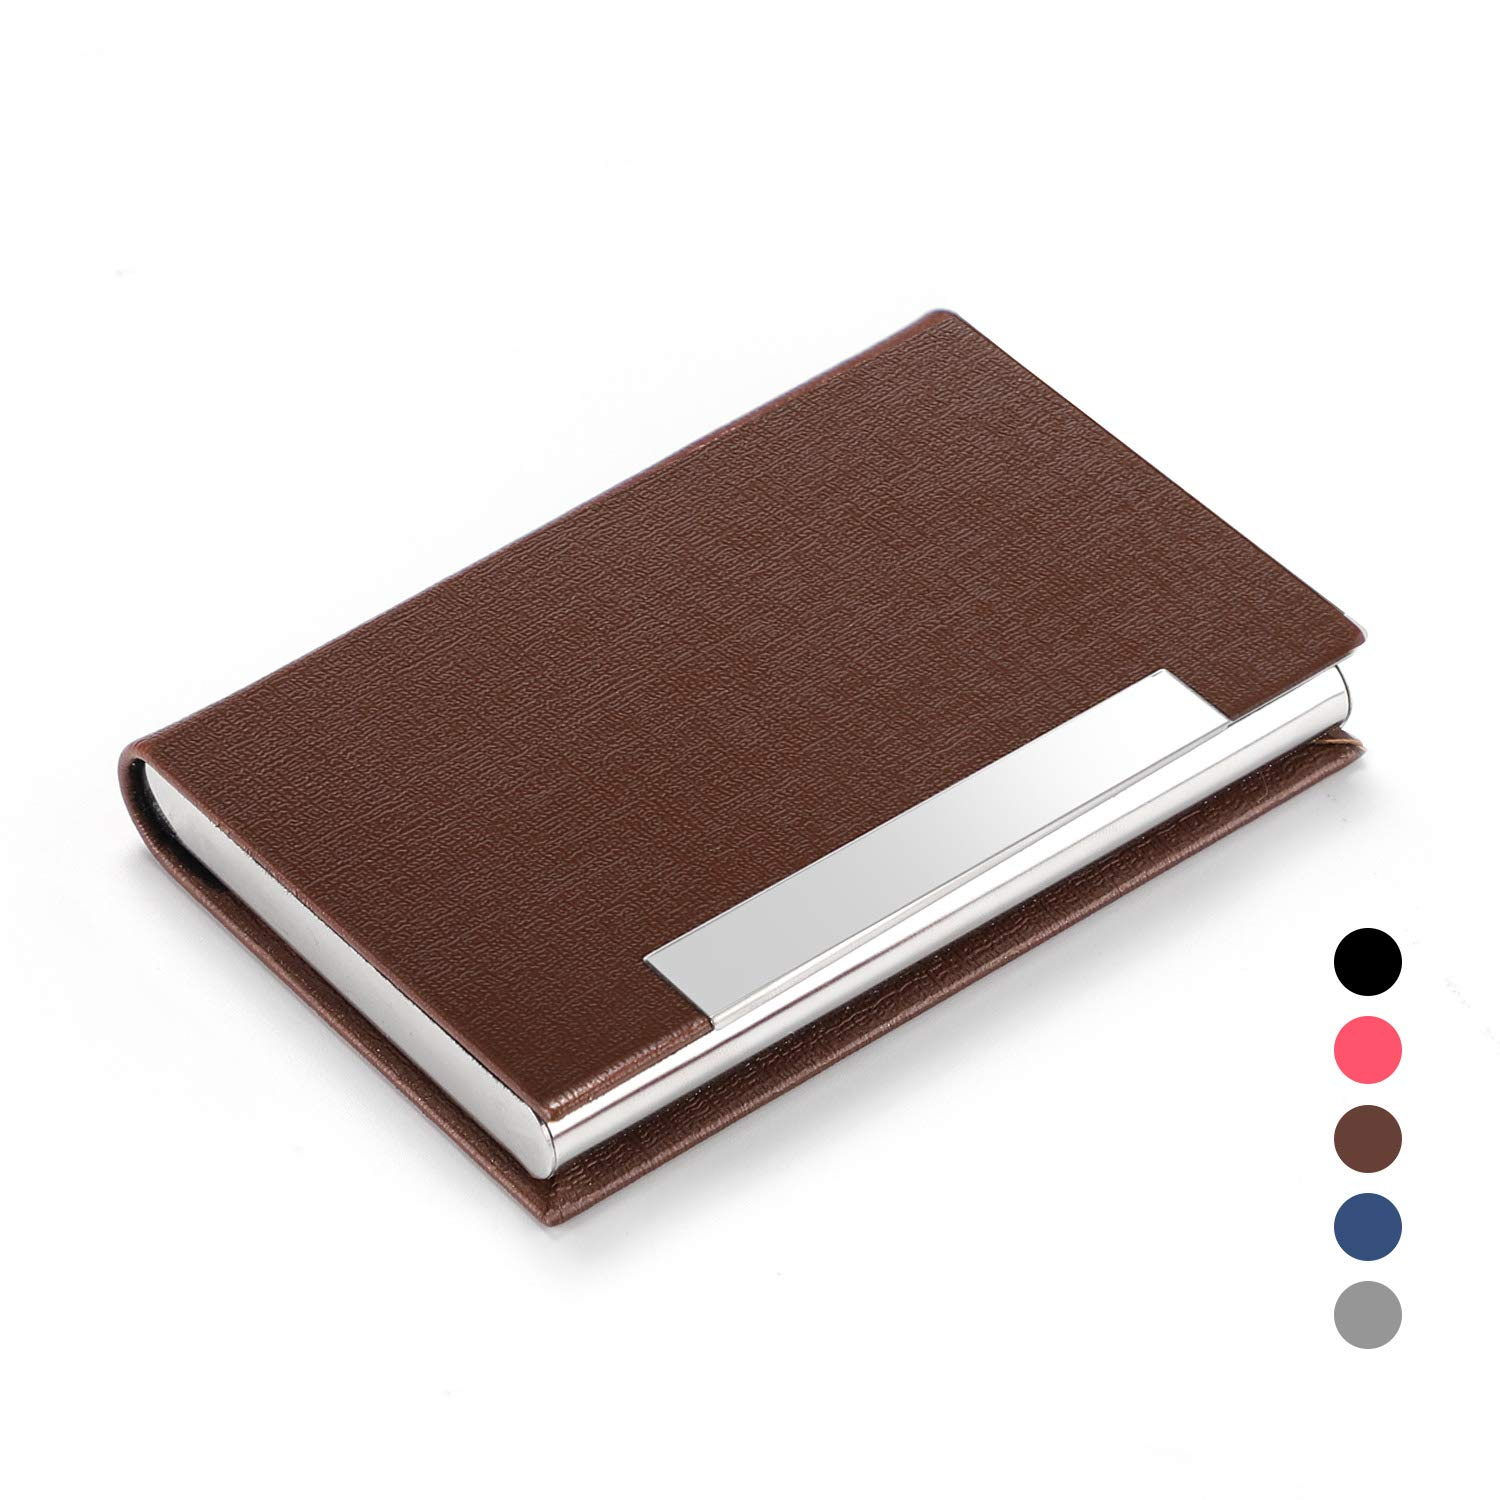 Business Card Holder Case, AHGXG Professional Slim Name Card Case Credit Card ID Holder PU Leather&Stainless Steel Metal Wallets with Magnet Shuts for Men&Women, Keep 20 Business Cards, Silver Sevenhub